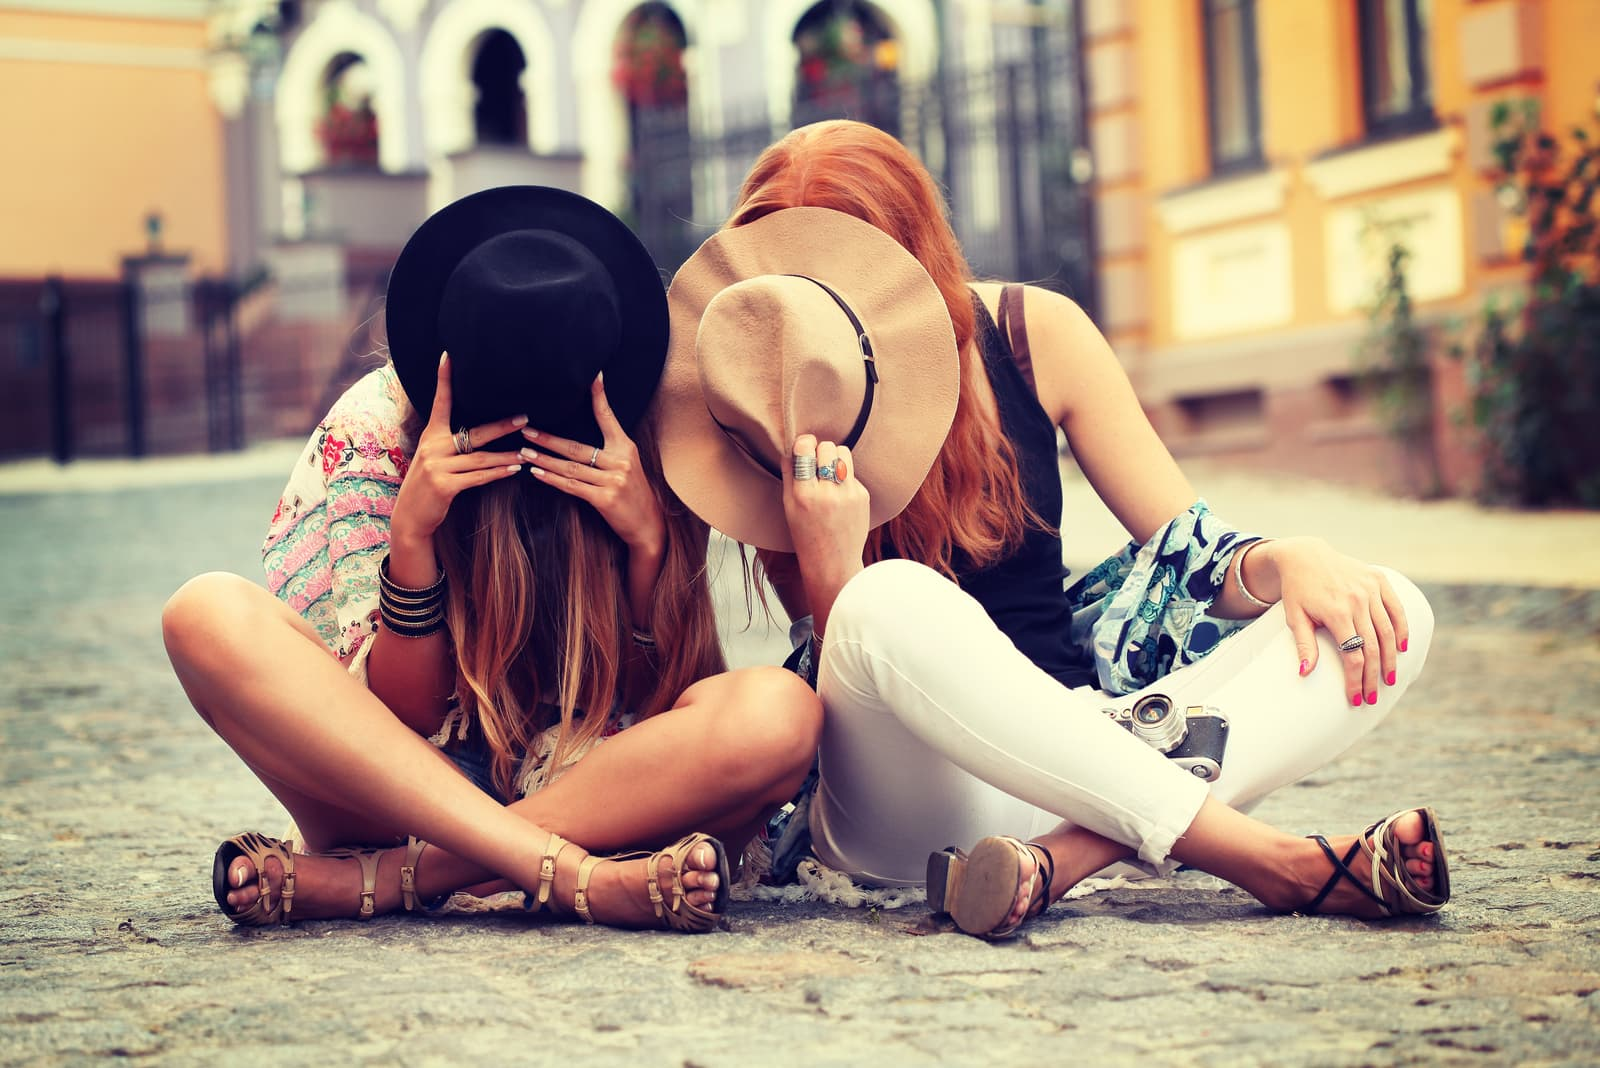 best friends sit on the street and have fun